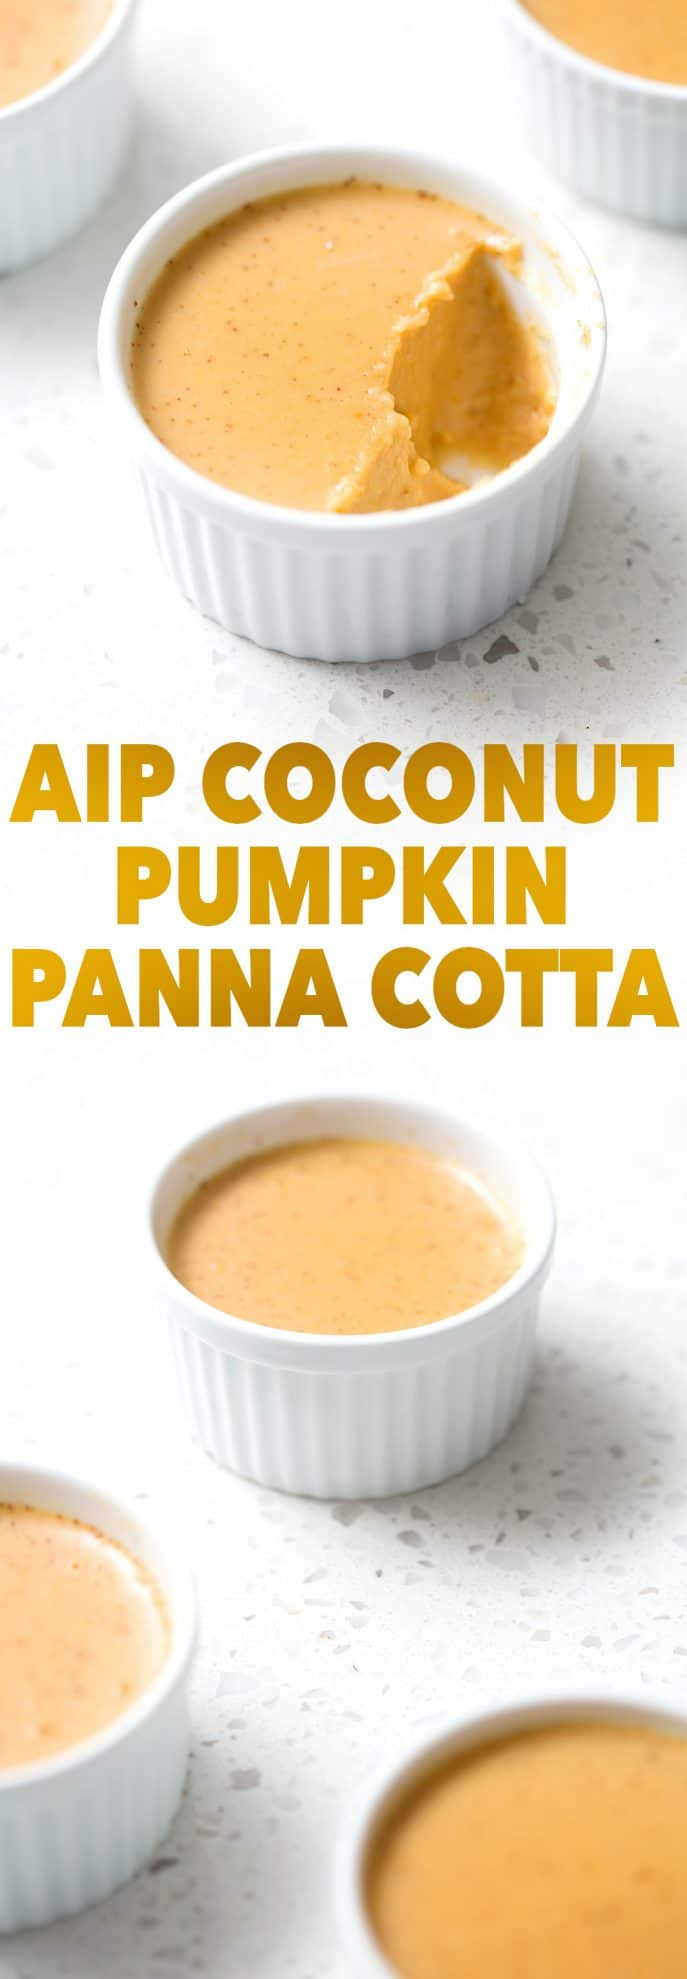 Here's an AIP (which means dairy, soy, nut and refined sugar free) coconut based dessert that is the new wintertime favorite. Perfect for your healthy holidays! This recipe is allergy friendly (gluten, dairy, shellfish, nut, egg, and soy free) and suits the autoimmune protocol (AIP) and paleo diets.